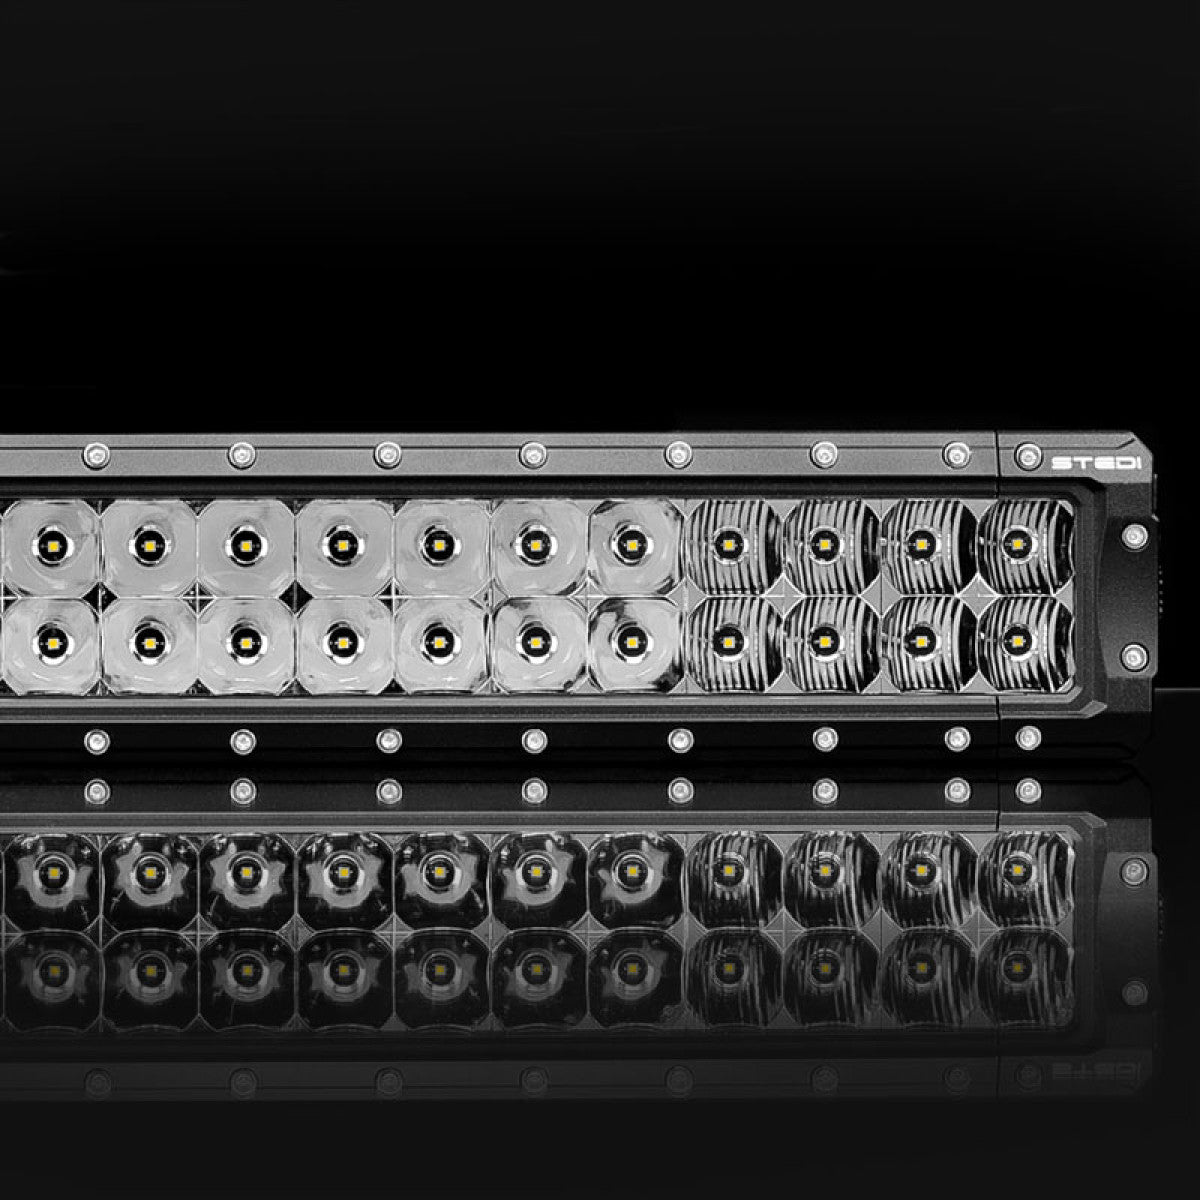 32 INCH ST4K 60 LED DOUBLE ROW LIGHT BAR